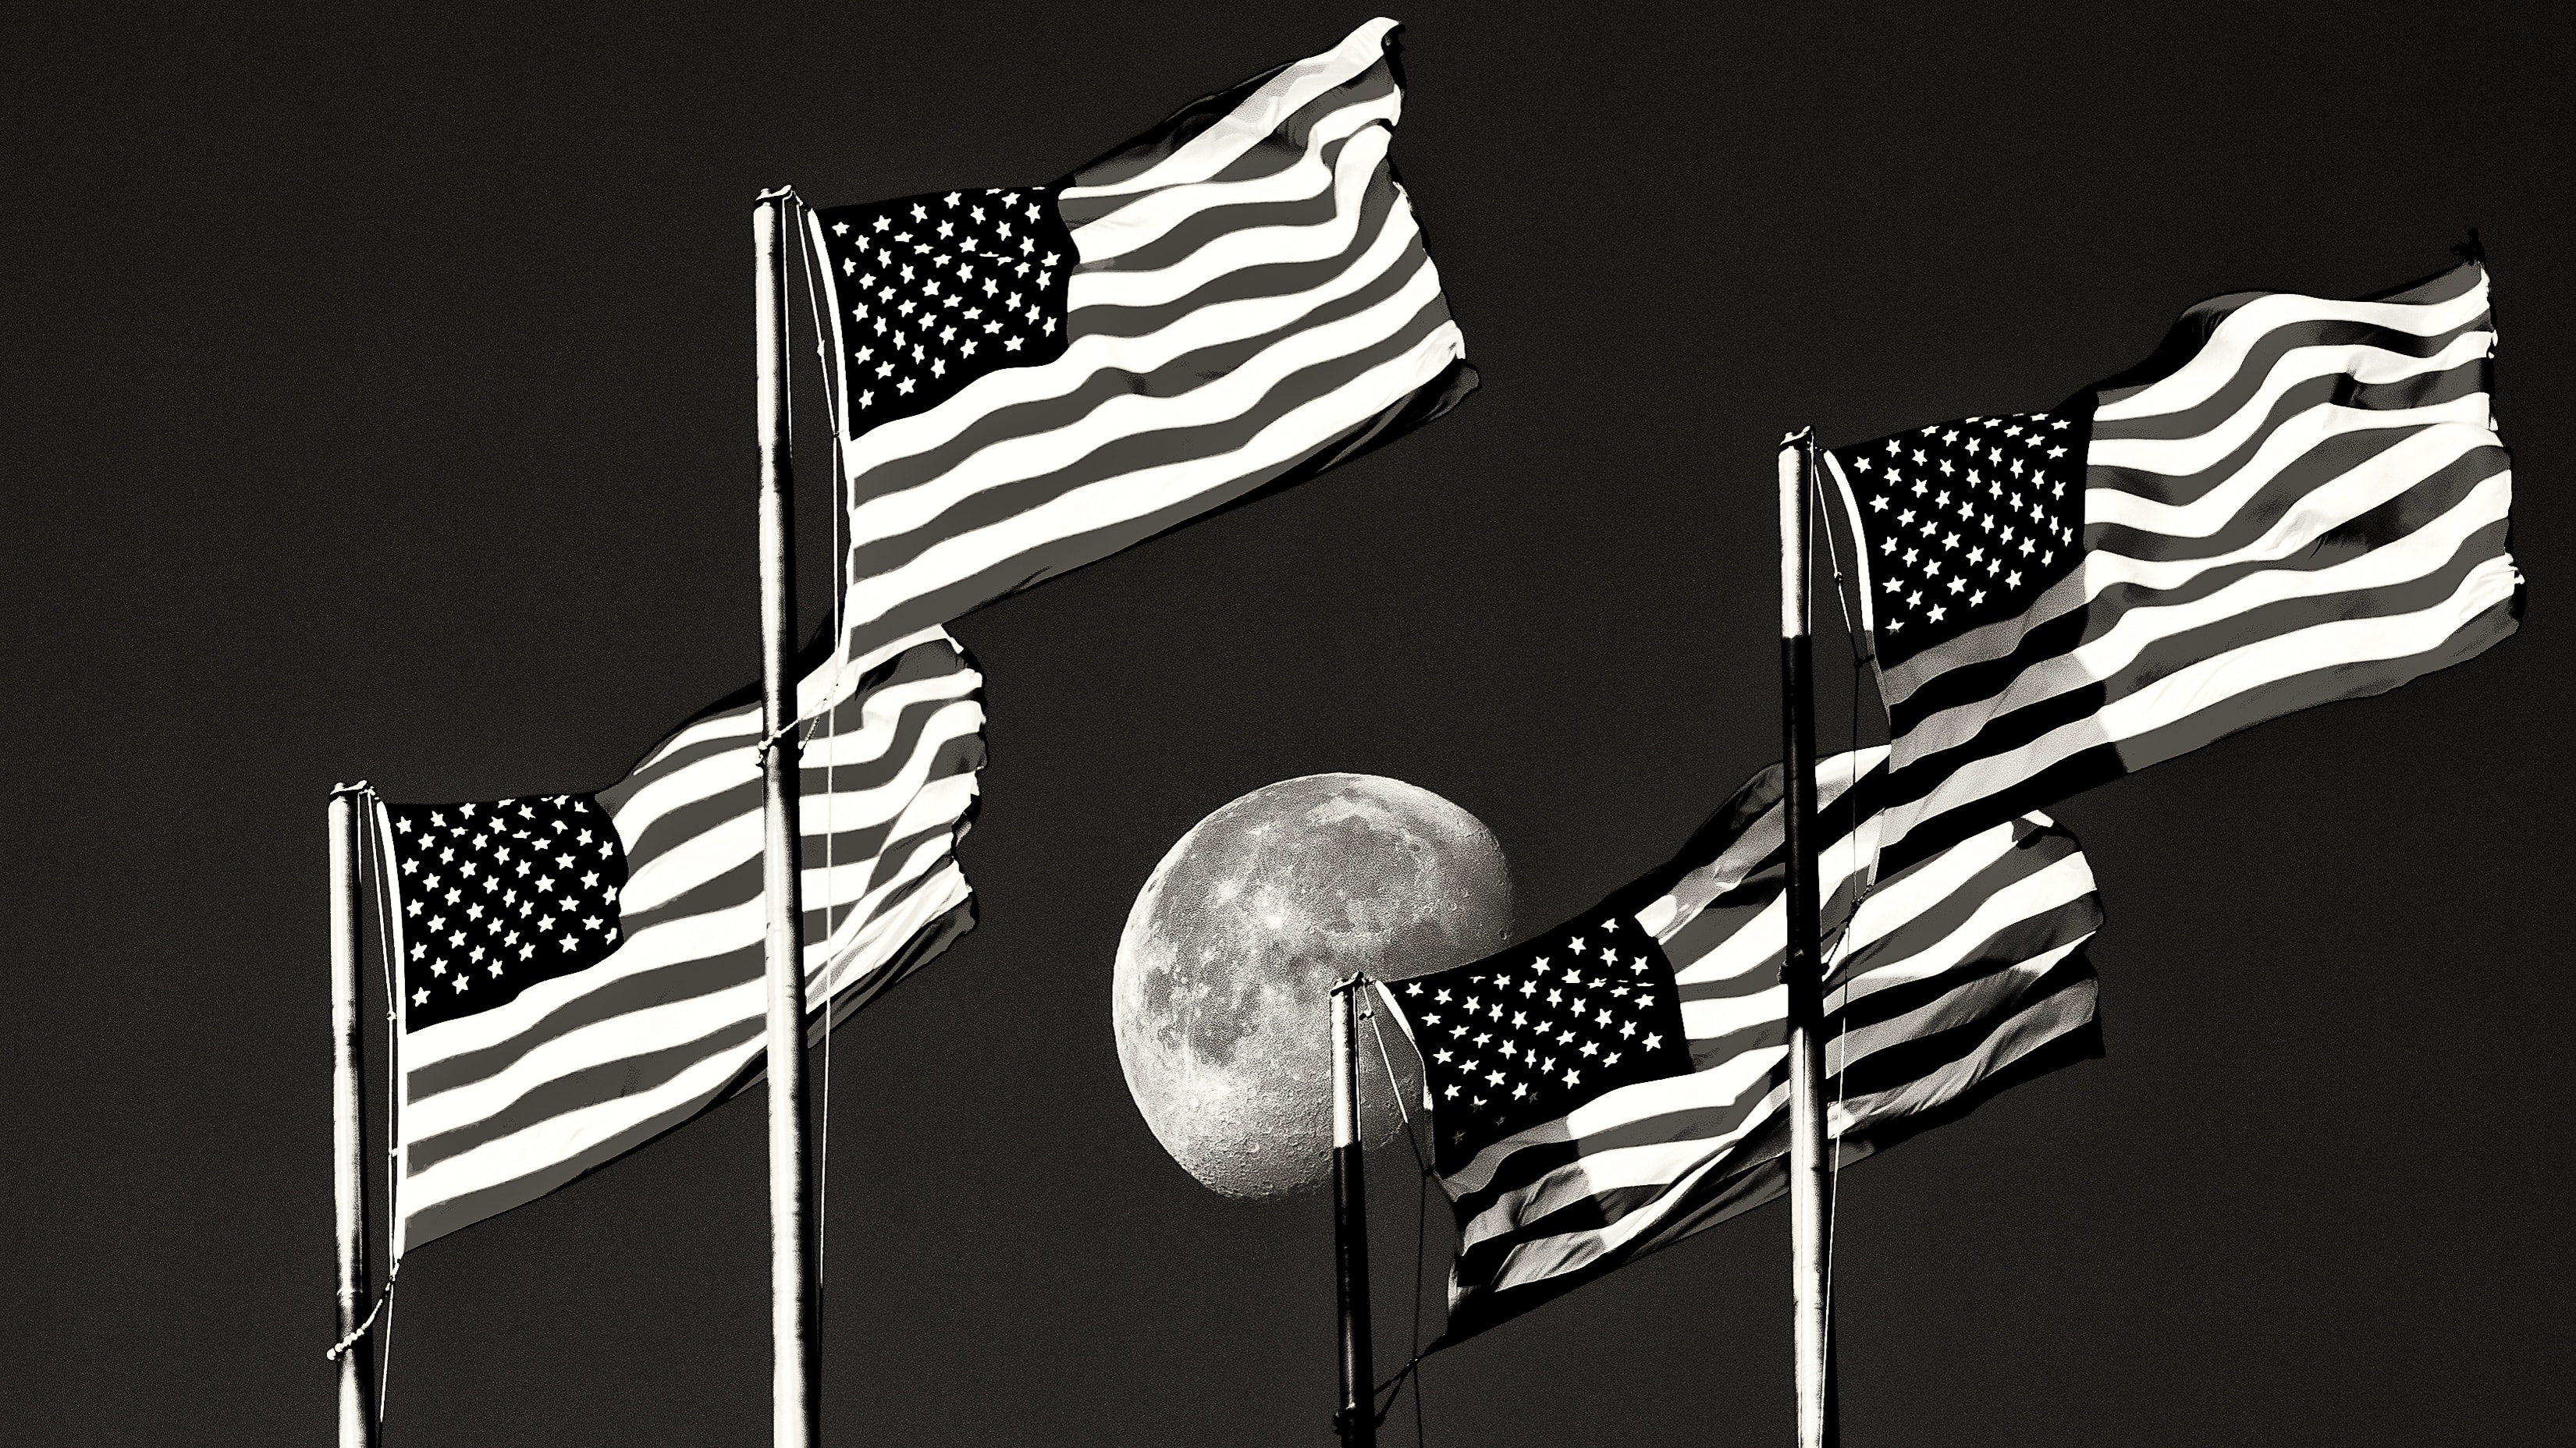 moonshot, space, flags